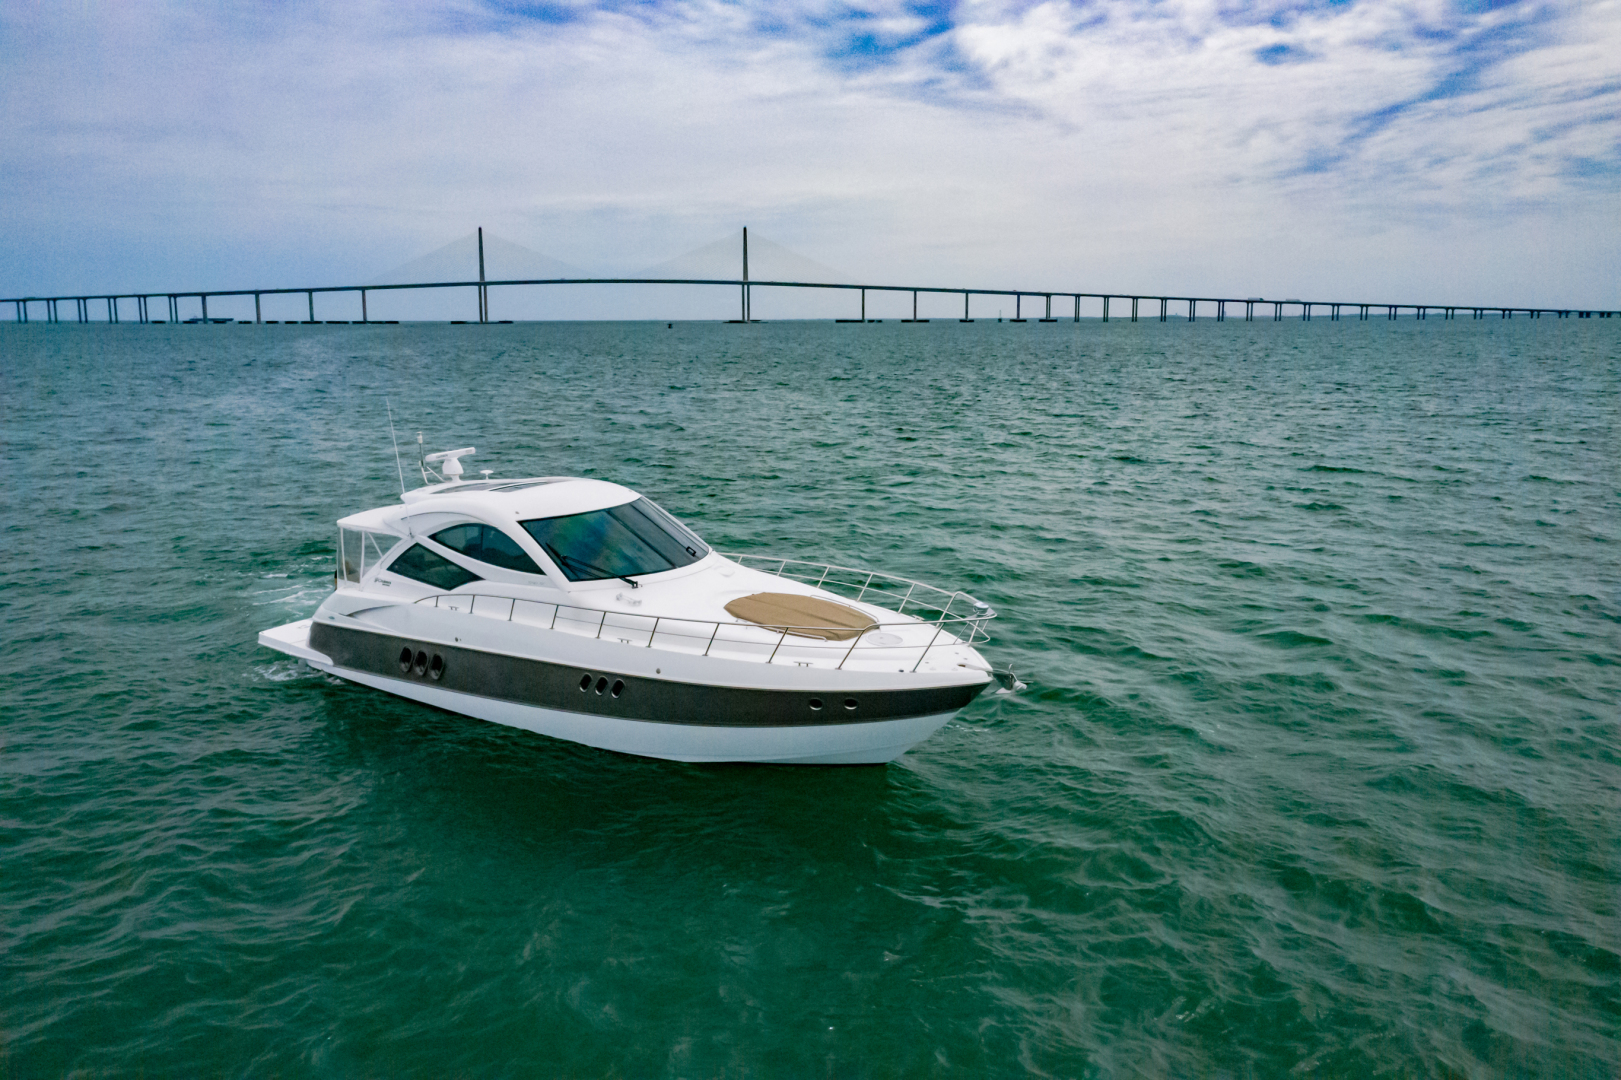 Cruisers-540 Coupe 2014-Galati Yacht Sales Trade Destin-Florida-United States-2014 Cruisers 540 Coupe-1417887 | Thumbnail